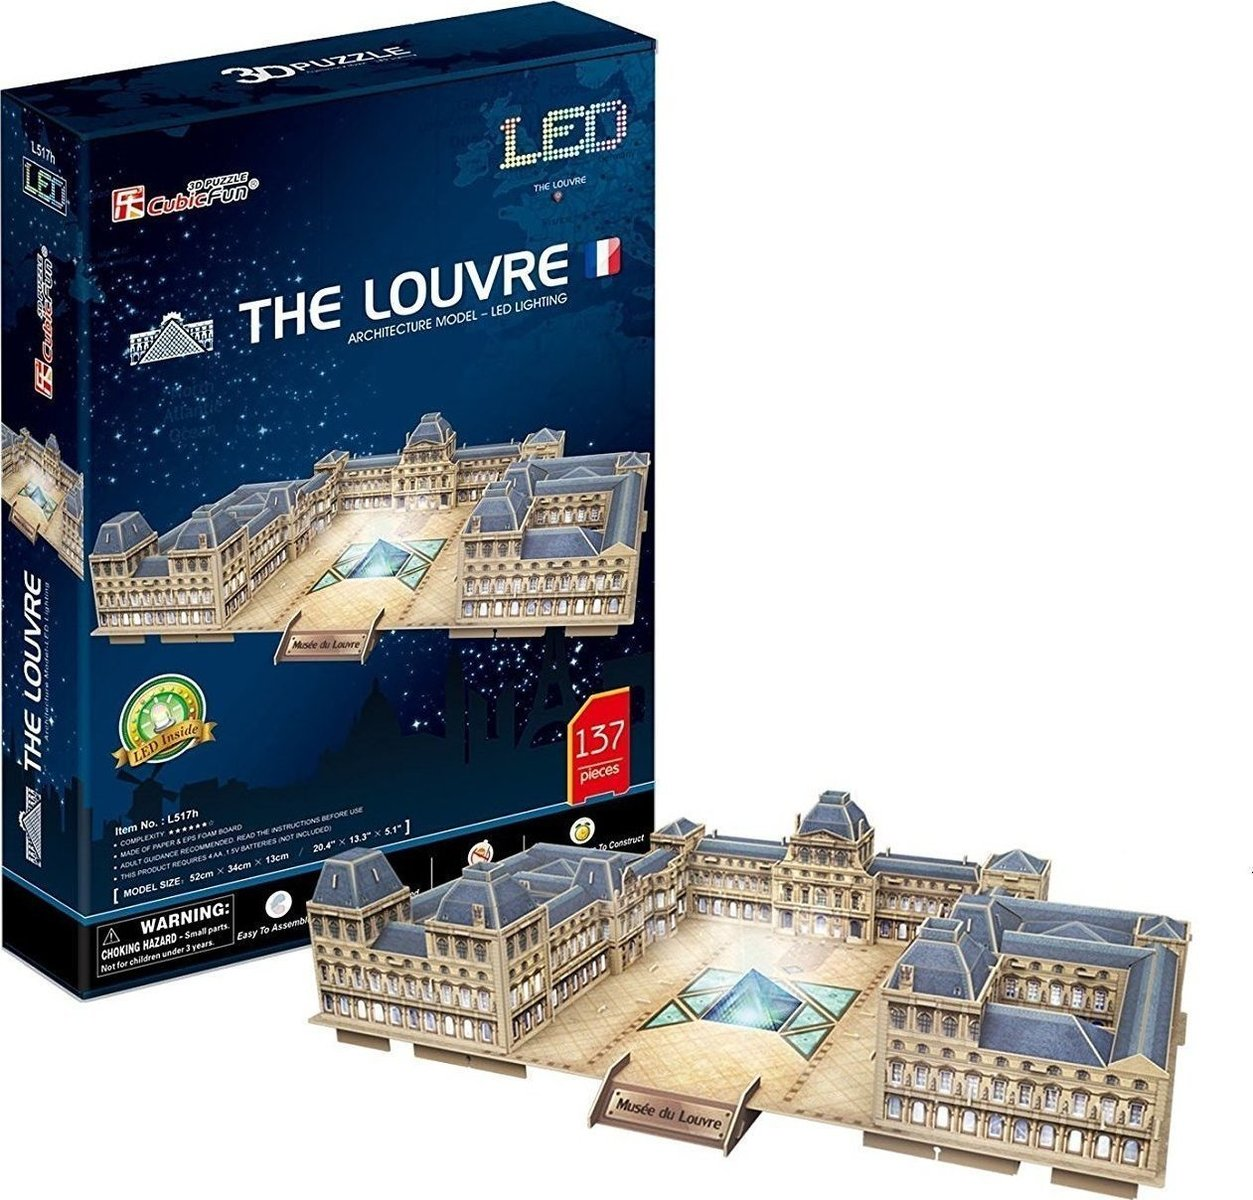 (L517h) THE LOUVRE - LED